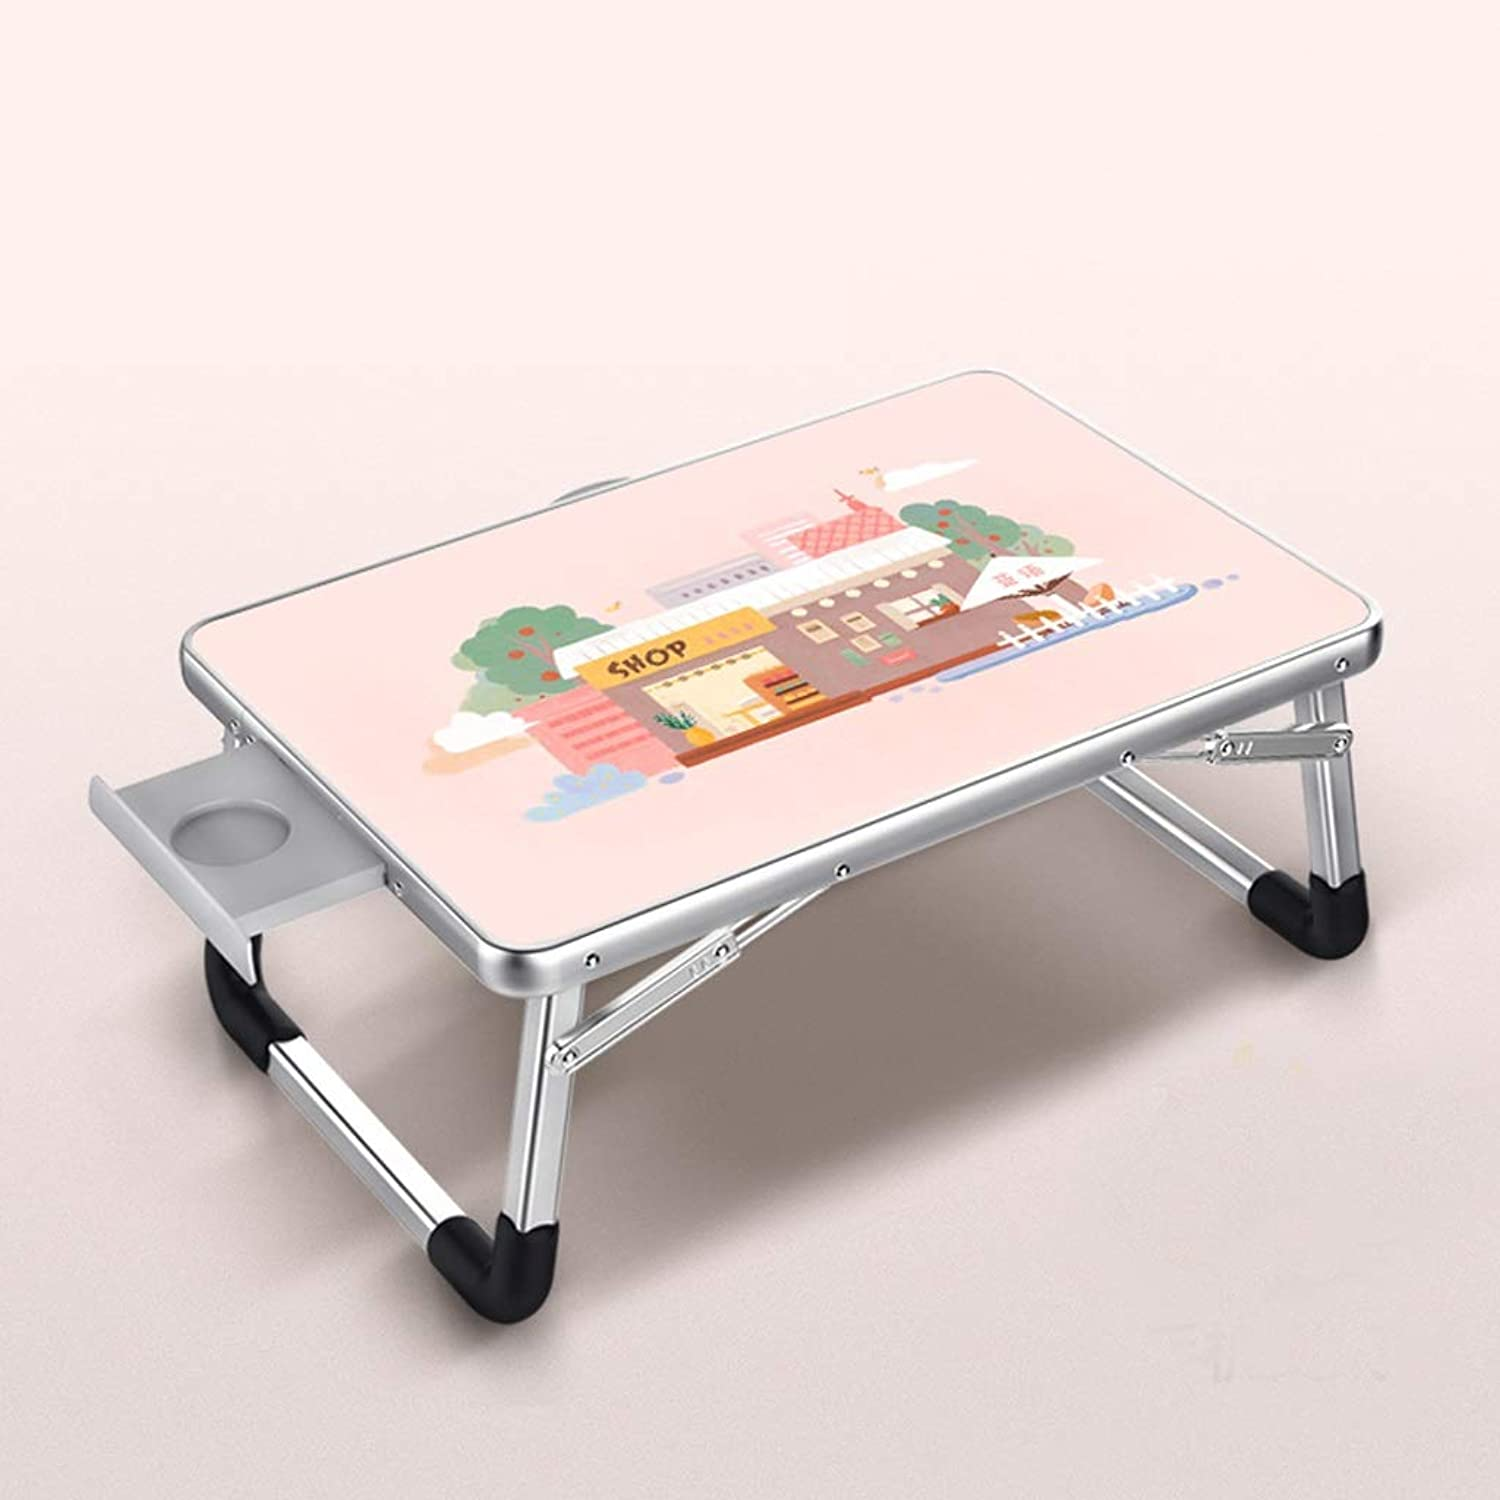 JSFQ Household Folding Table Bed Small Table Laptop Table Foldable Student Dormitory Lazy Table Personalized Metal Folding Table Folding Table (Size   70×50cm)